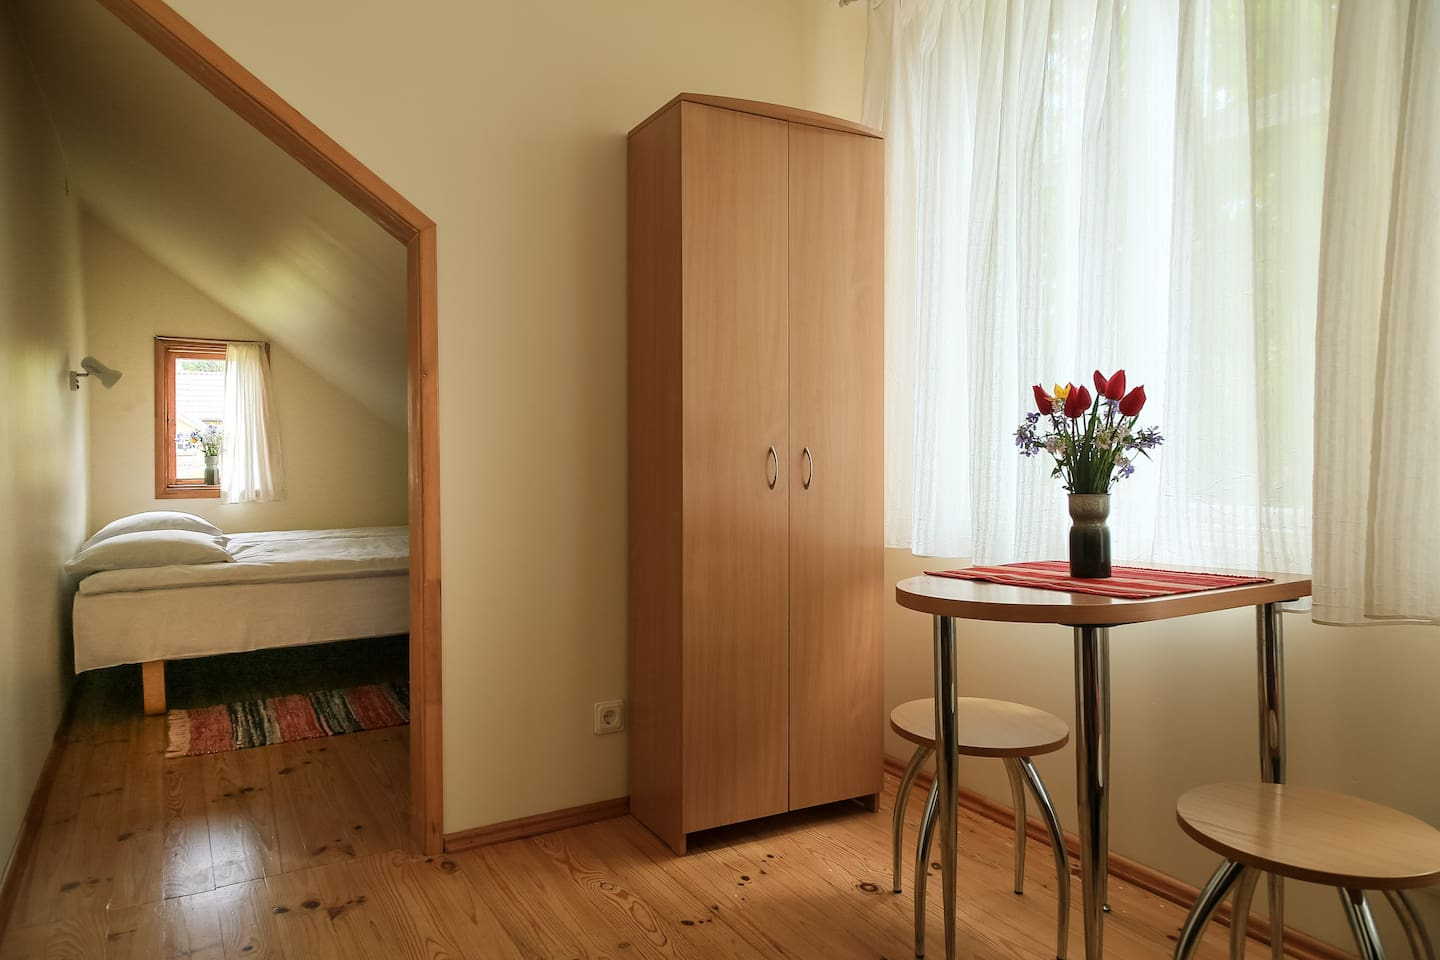 Room #1 - a mini-appartment consisting of two small rooms, sleeps 3-4 people